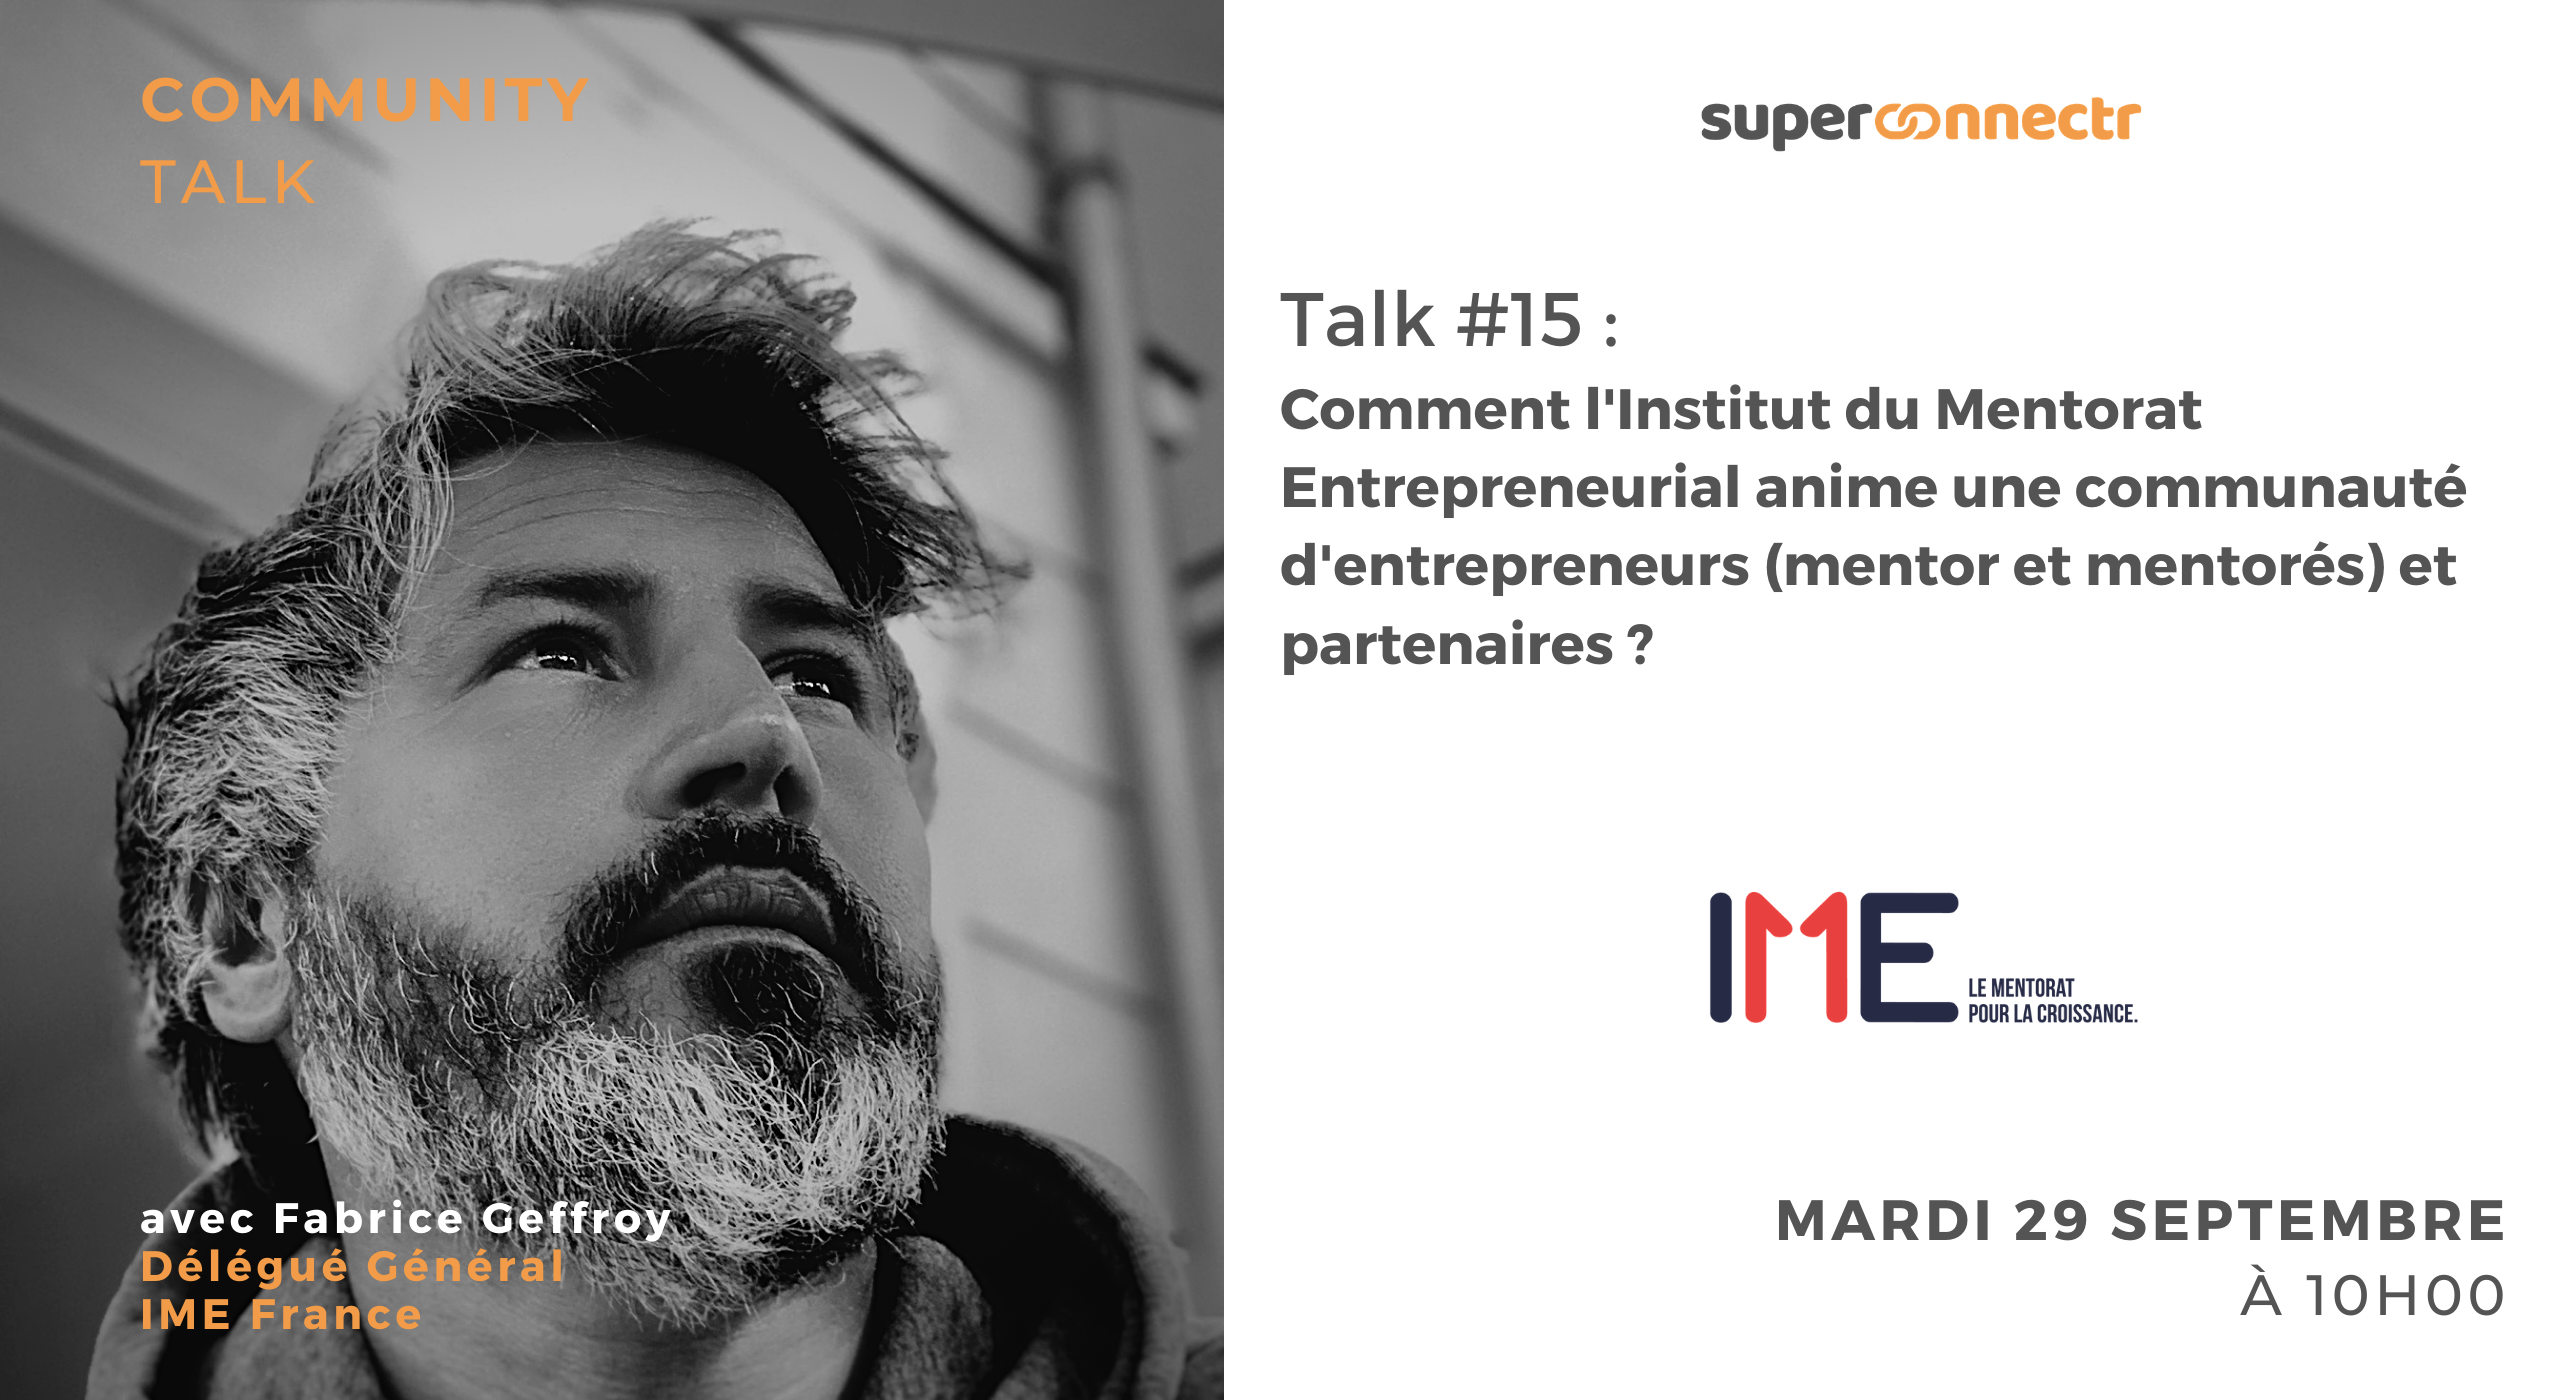 Community Talk by SuperConnectr - A la rencontre de la communauté IME France - Institut du Mentorat Entrepreneurial